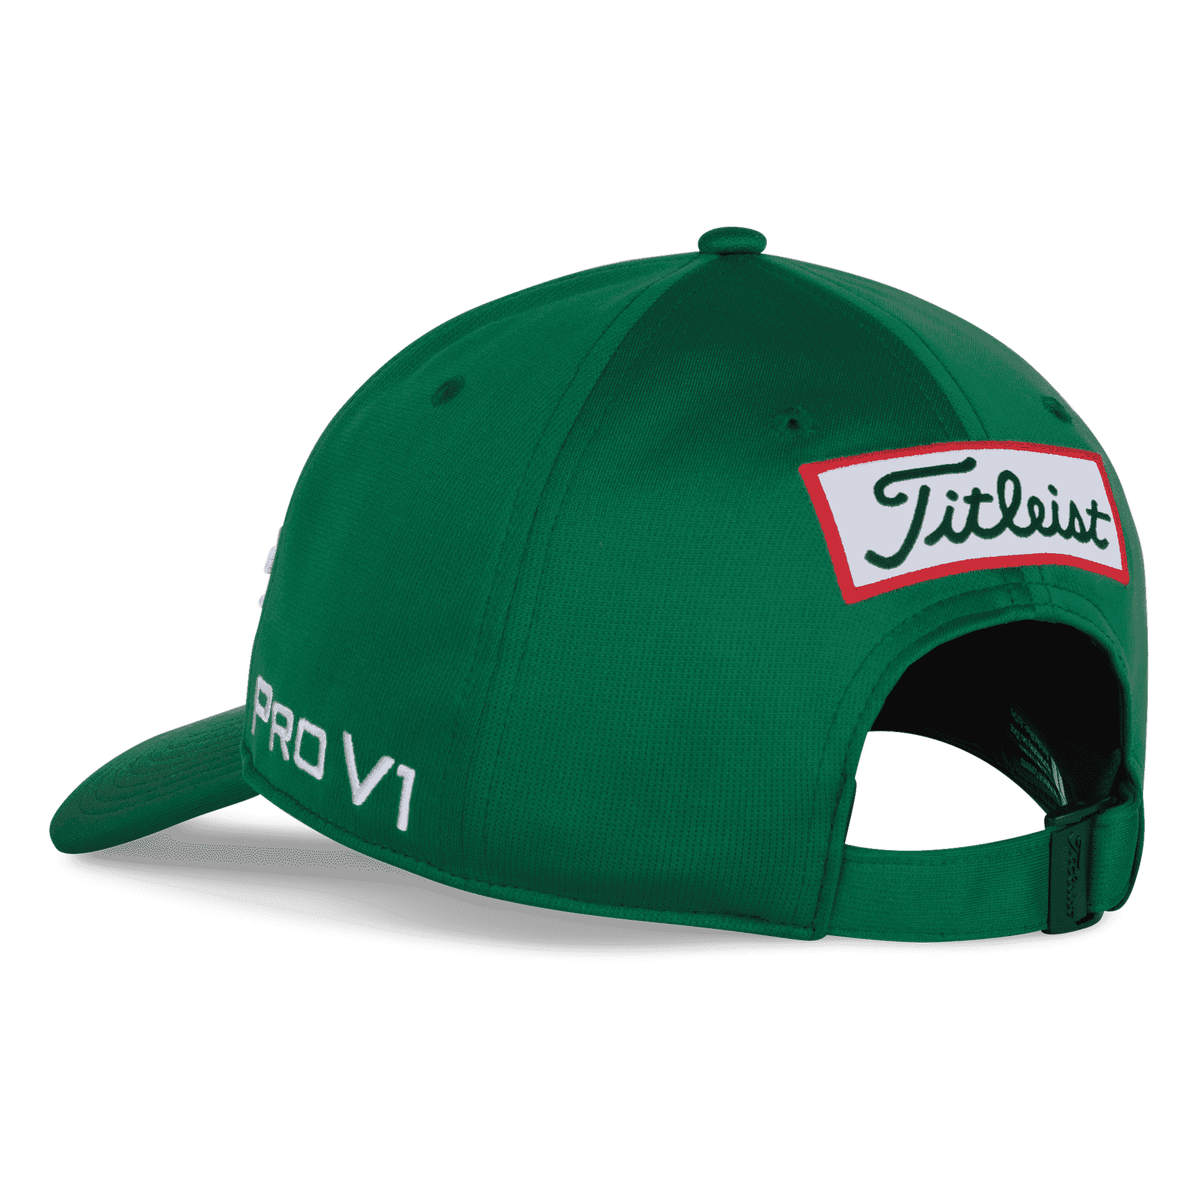 Green Out Tour Standard Curve